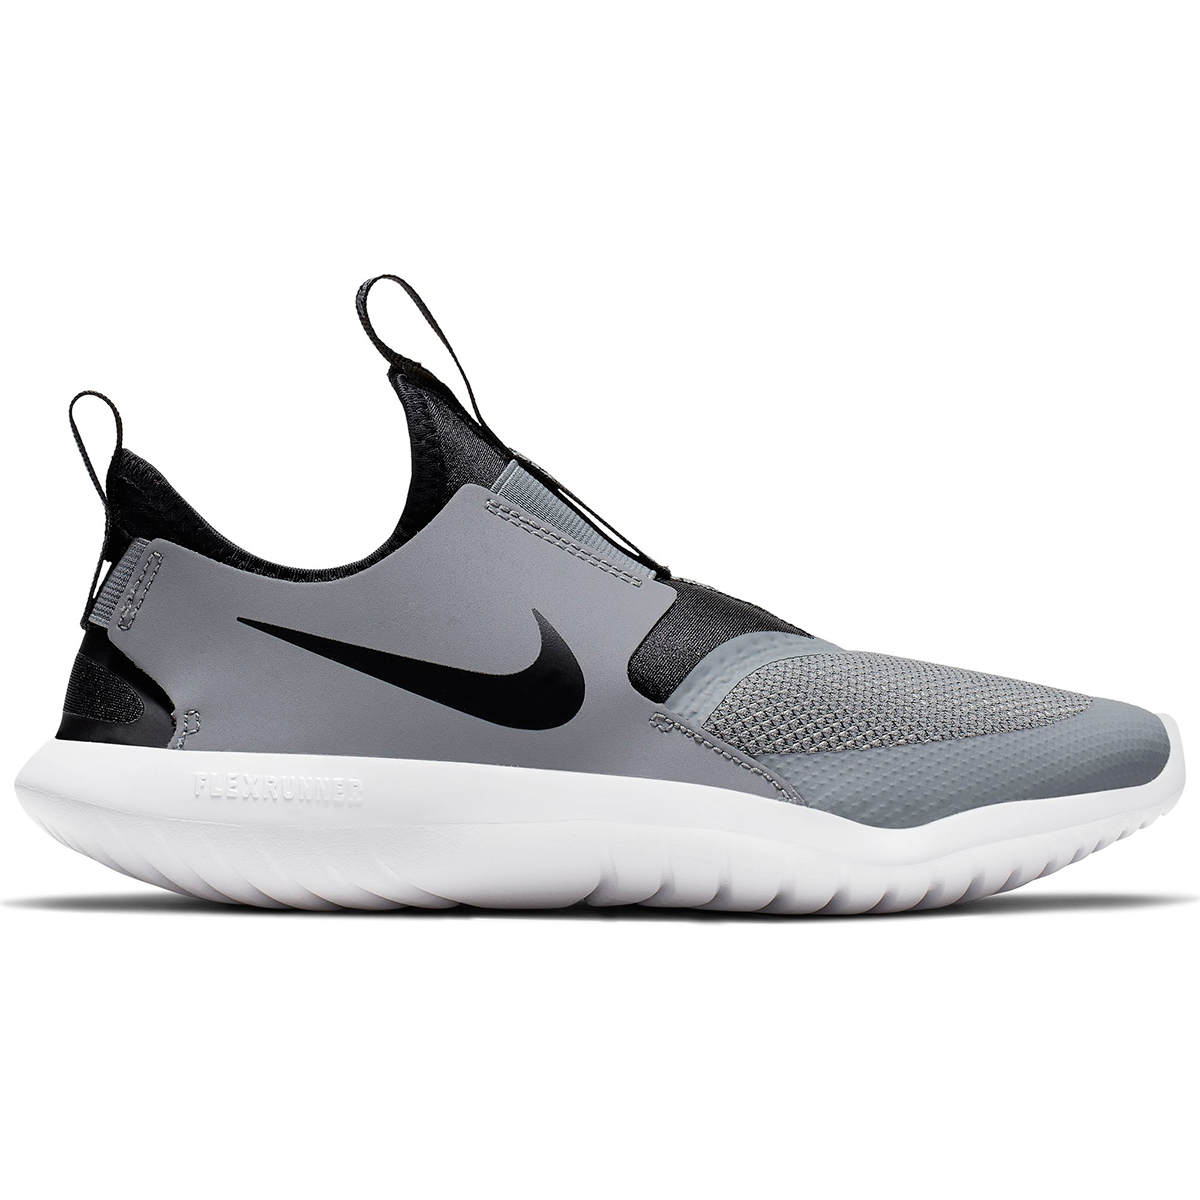 Kids Nike Grade School Flex Runner Shoe - Color: Cool Grey/Black (Regular Width) - Size: 3.5, Cool Grey/Black, large, image 1